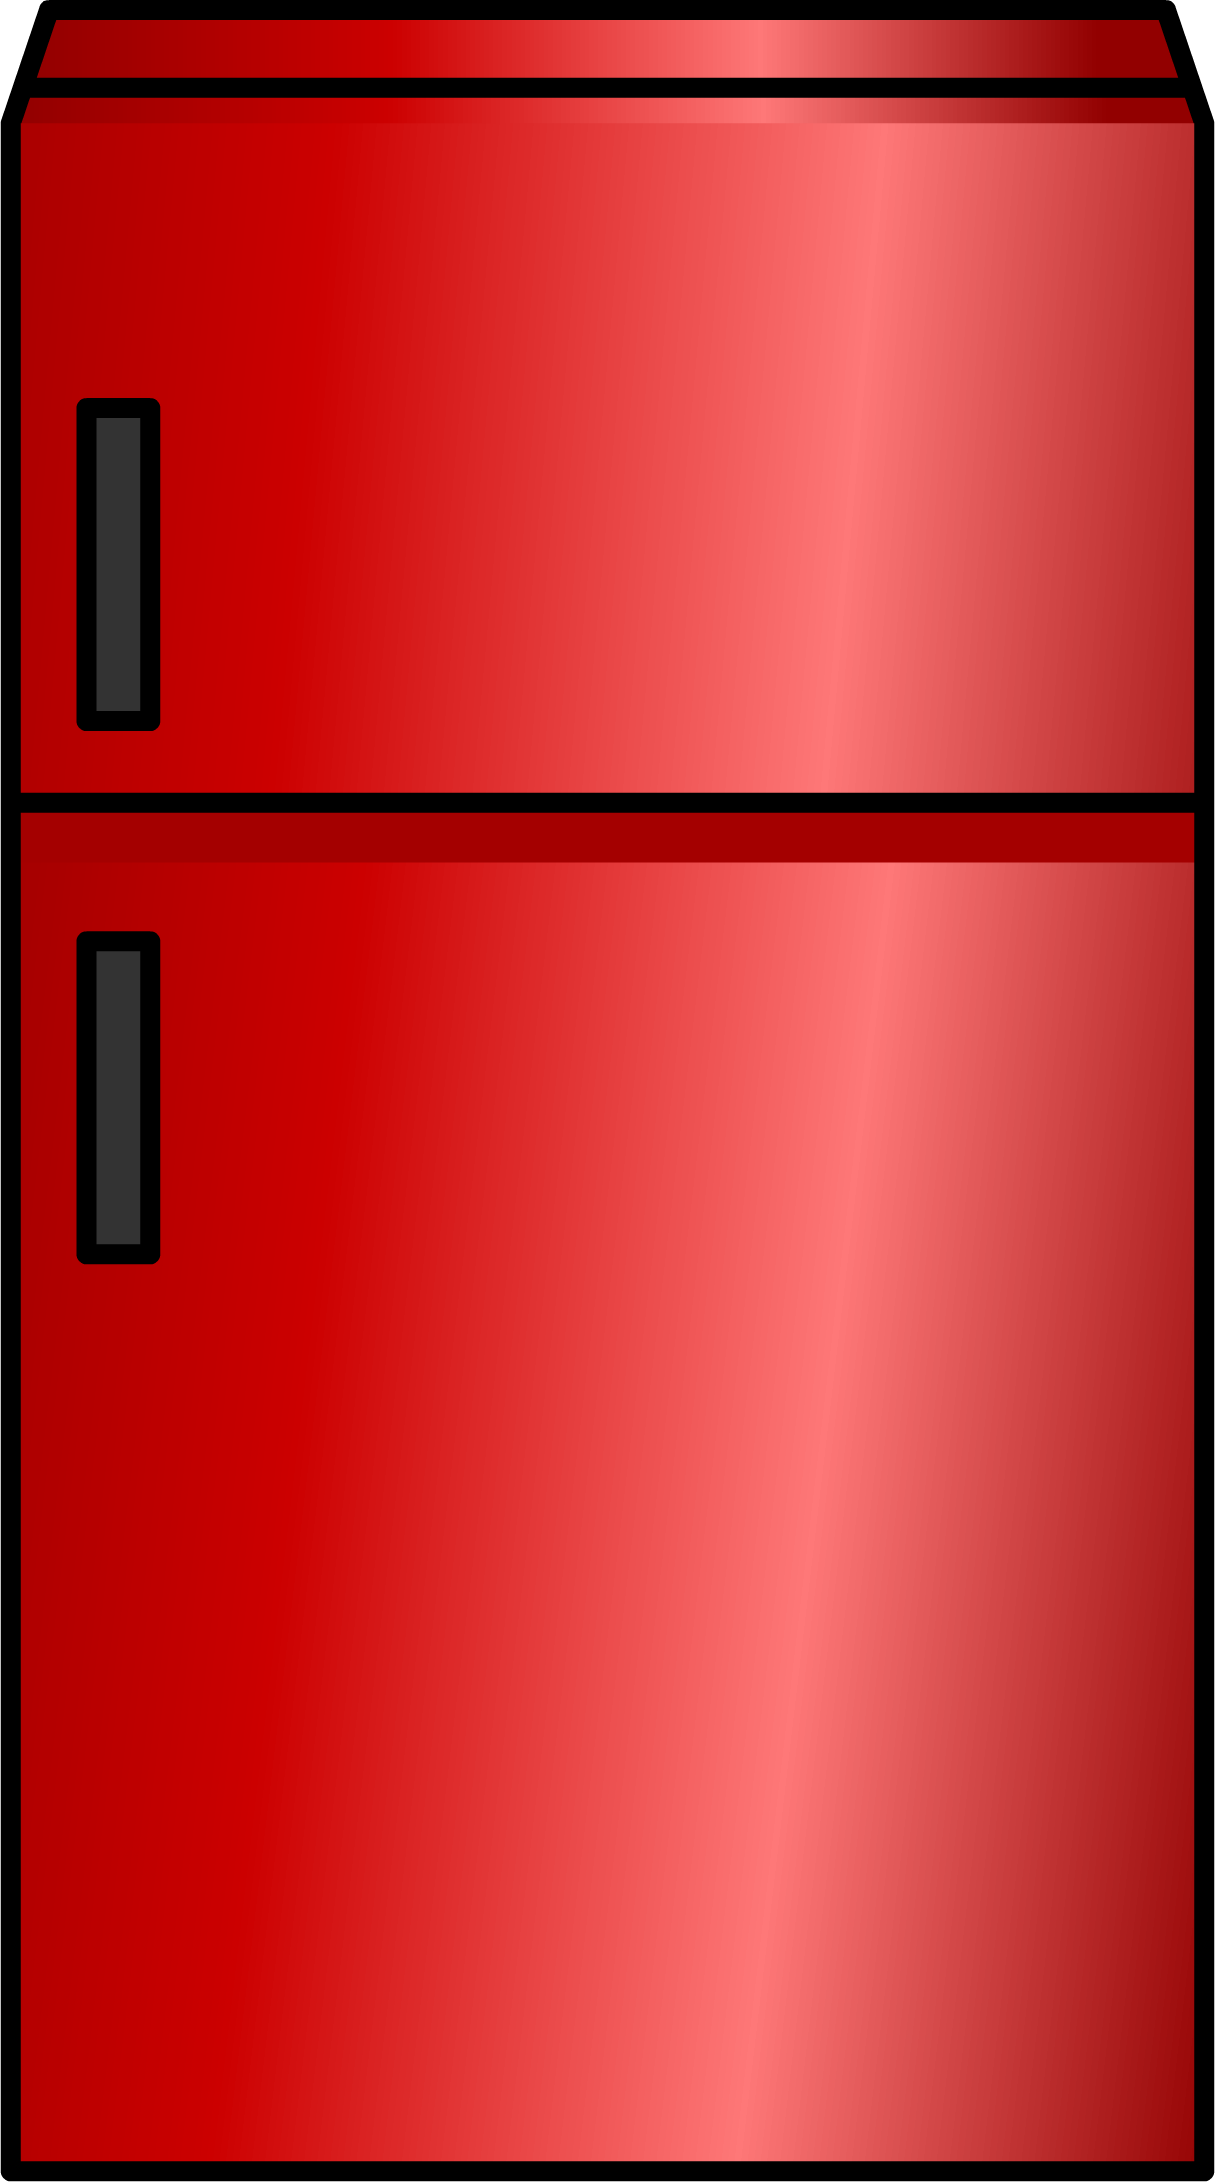 Shiny Red Fridge Club Penguin Wiki